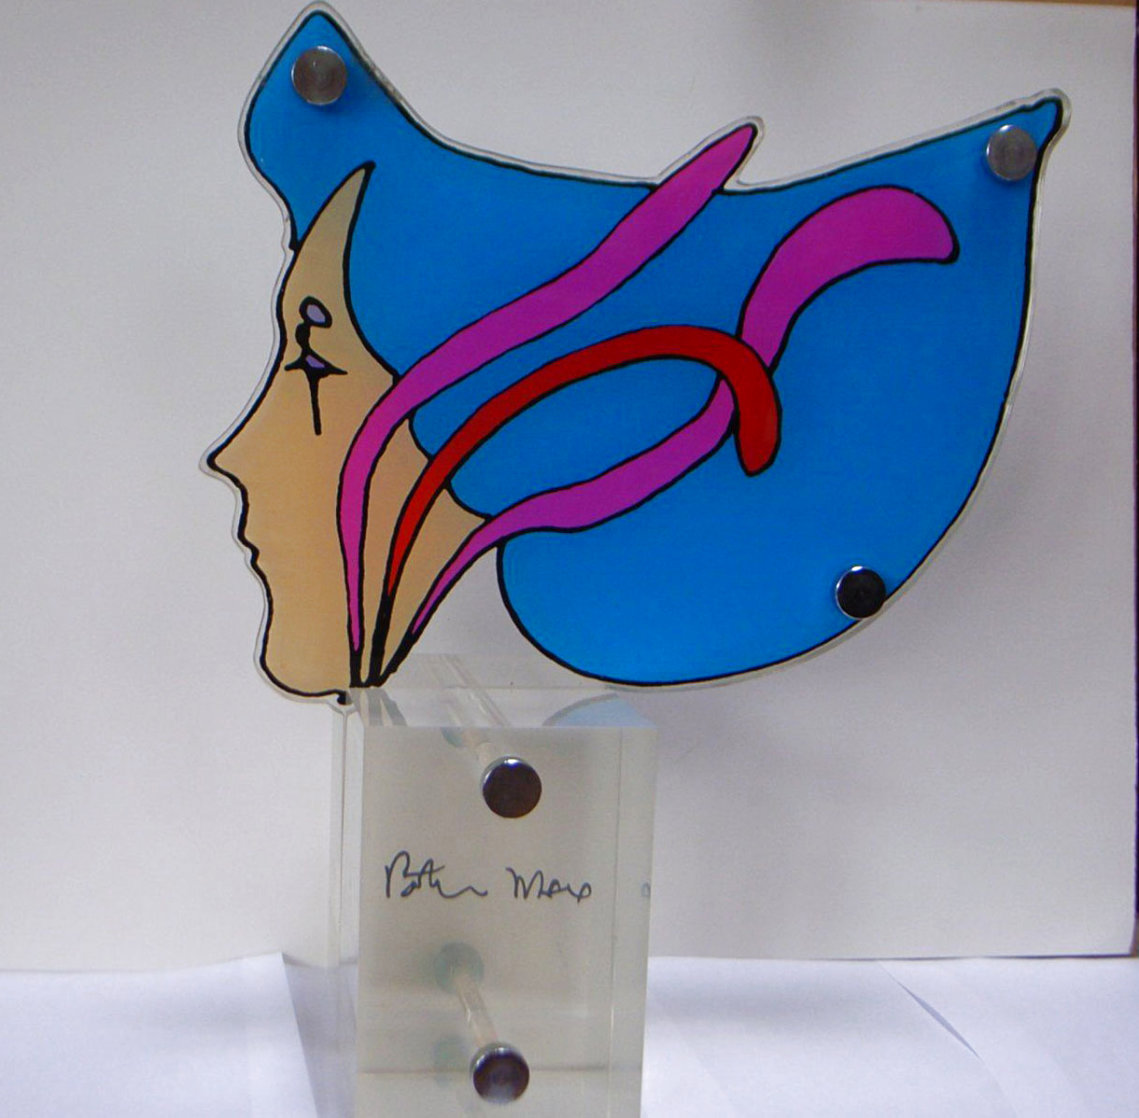 Untitled Profile Hand Painted Sculpture Rare 1970 Sculpture by Peter Max